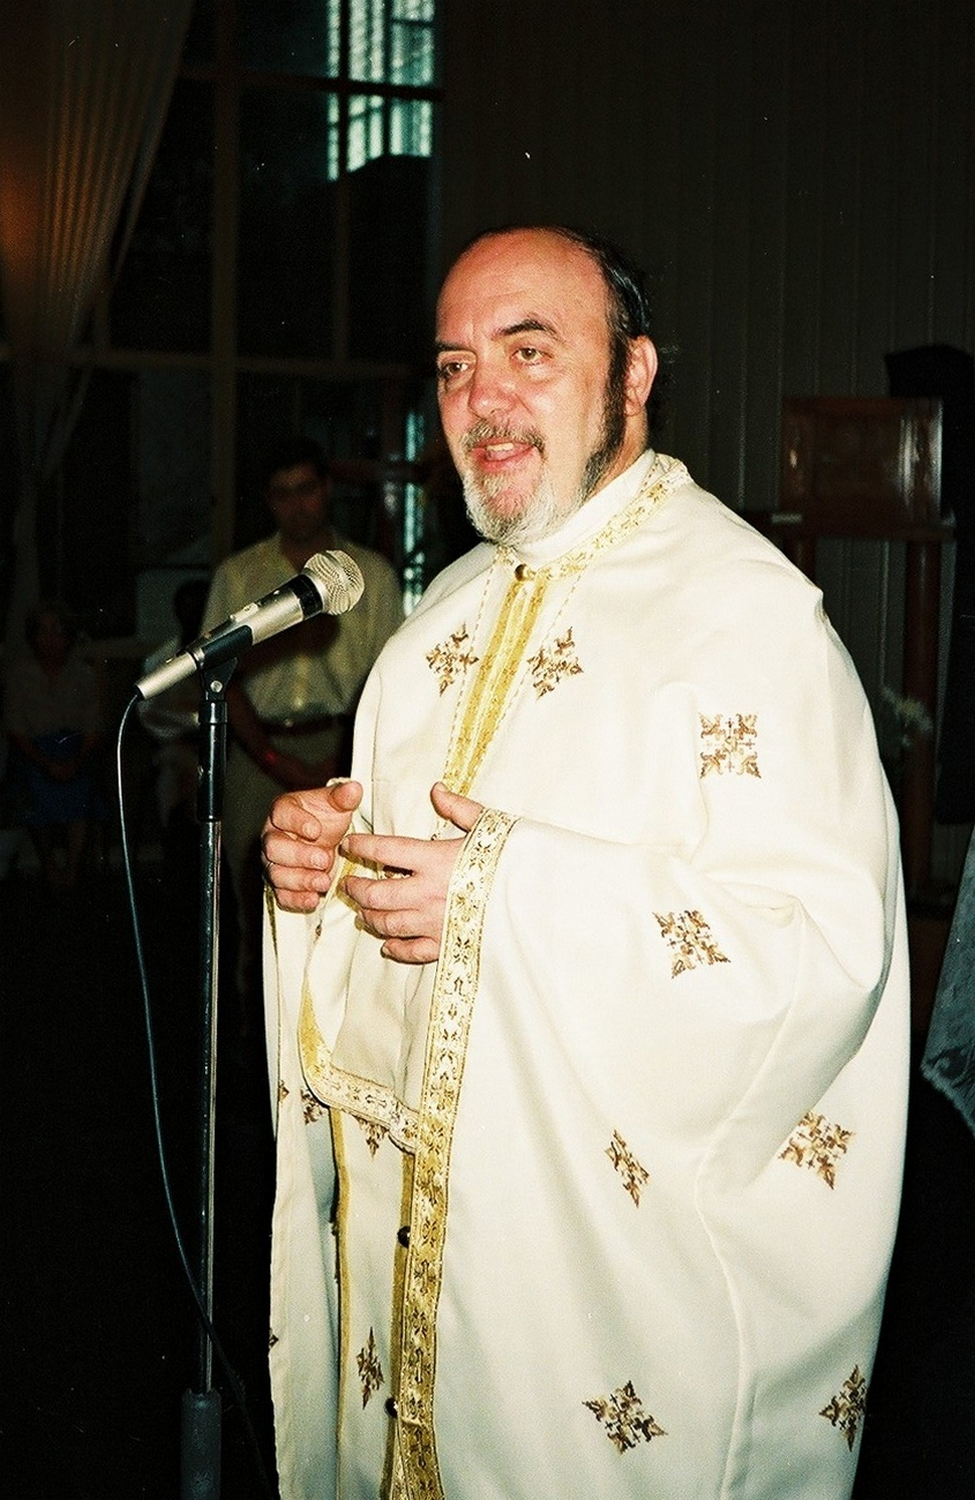 Fr. Michale Oleksa from Alaska at a conference in Brazil, 1996